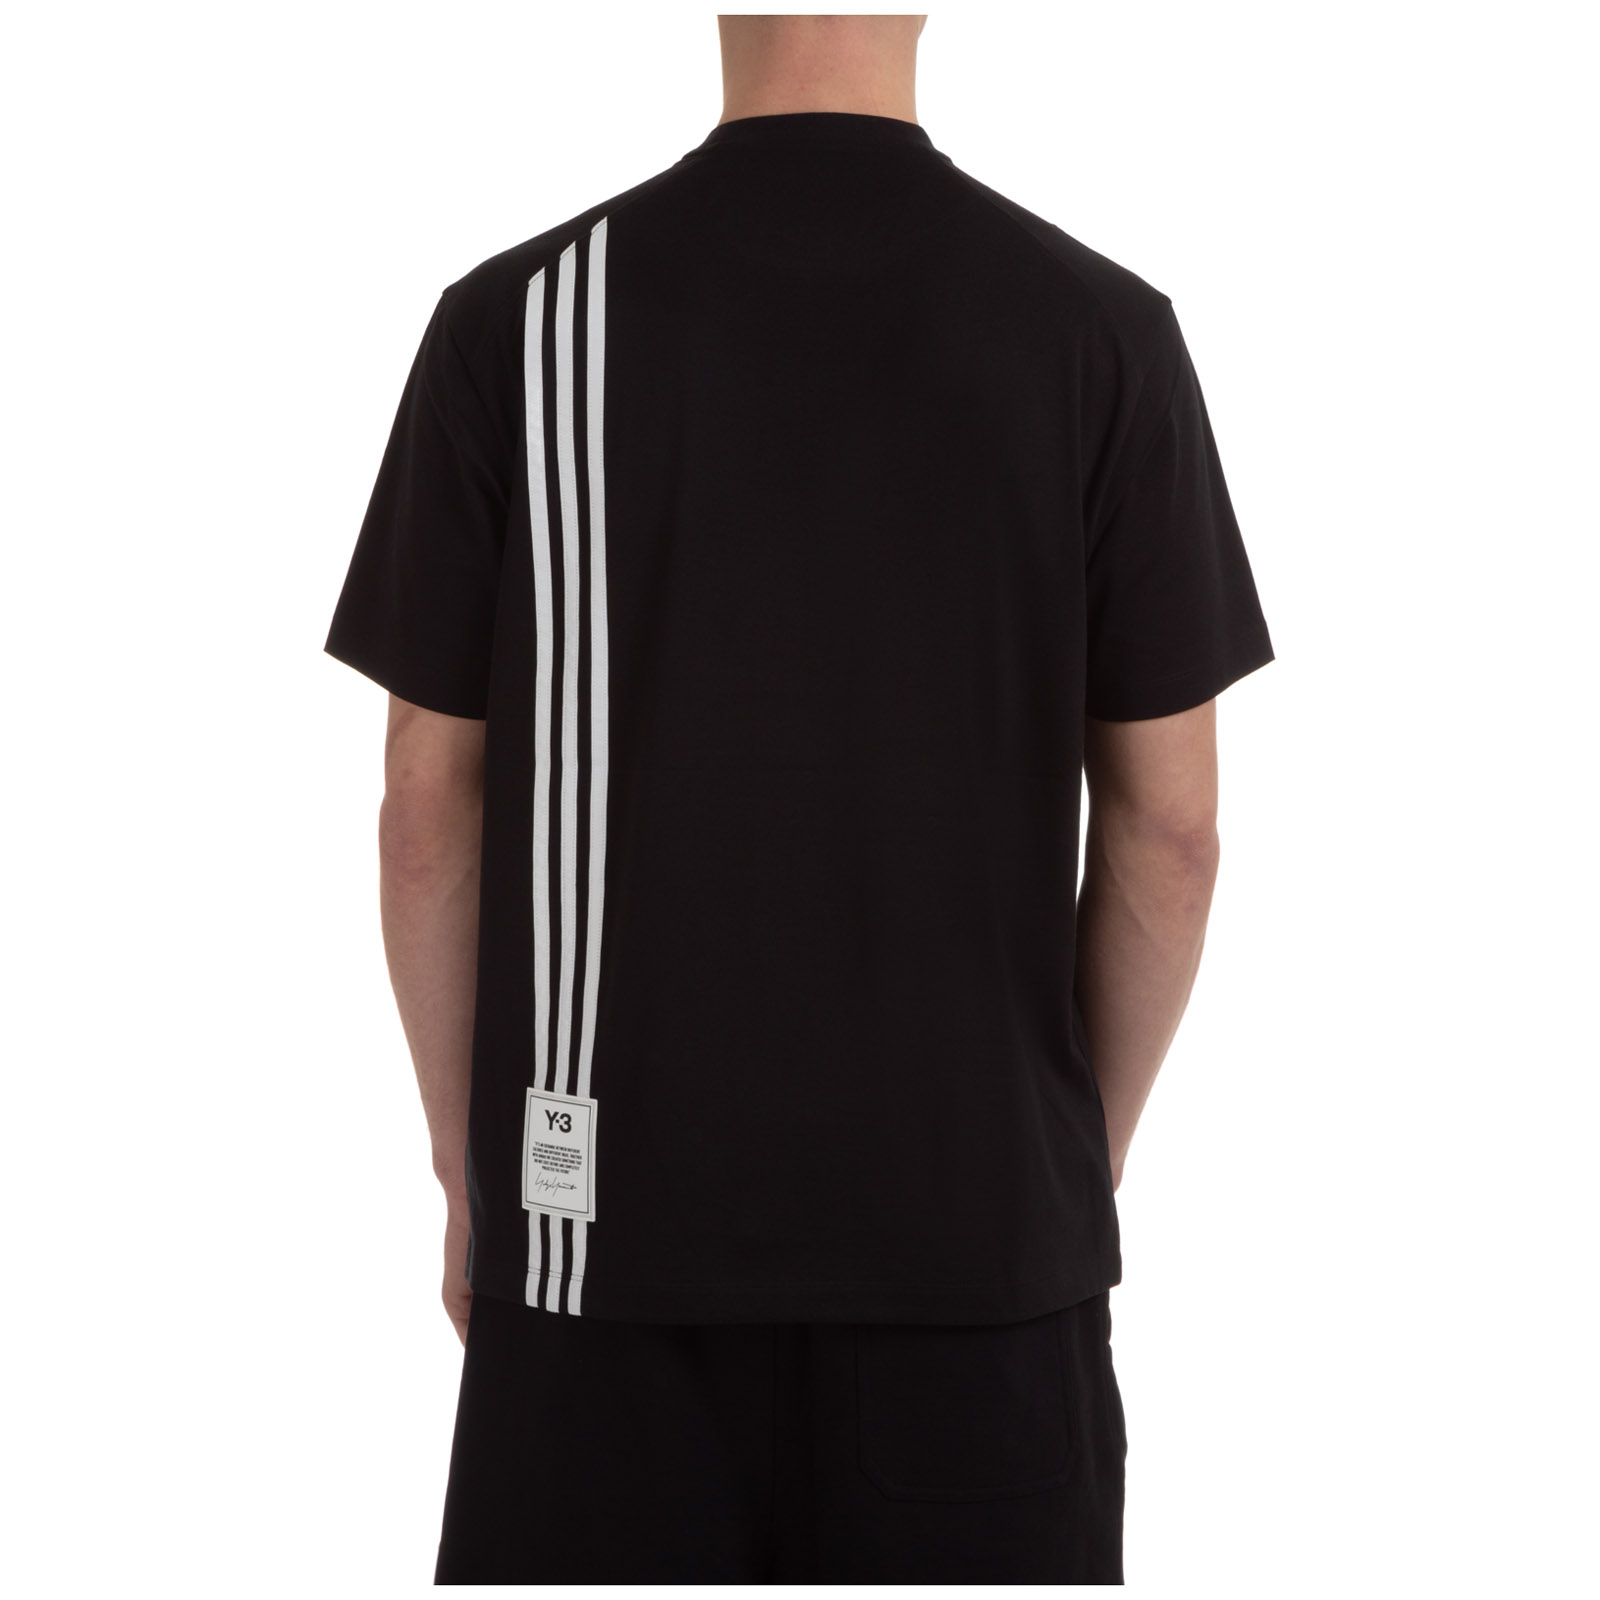 Y-3 MEN'S SHORT SLEEVE T-SHIRT CREW NECKLINE JUMPER